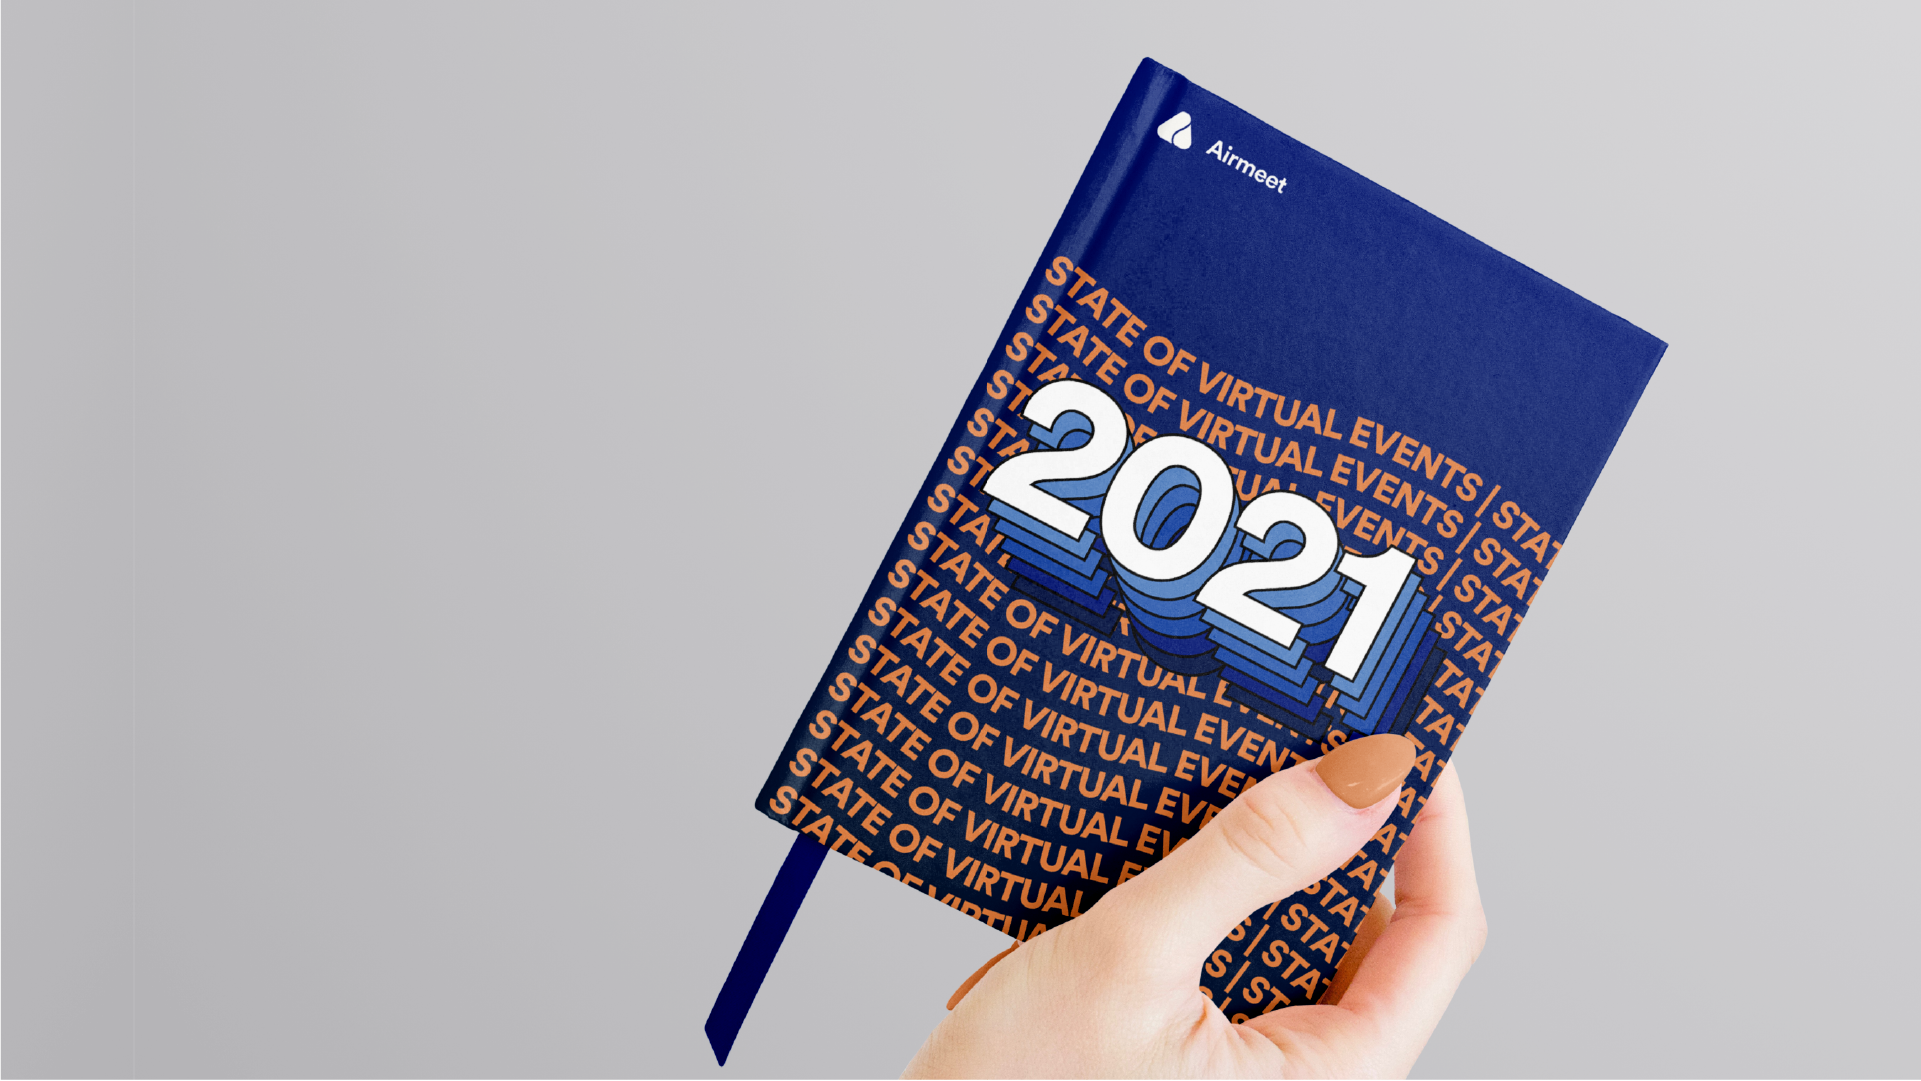 State of virtual events in 2021